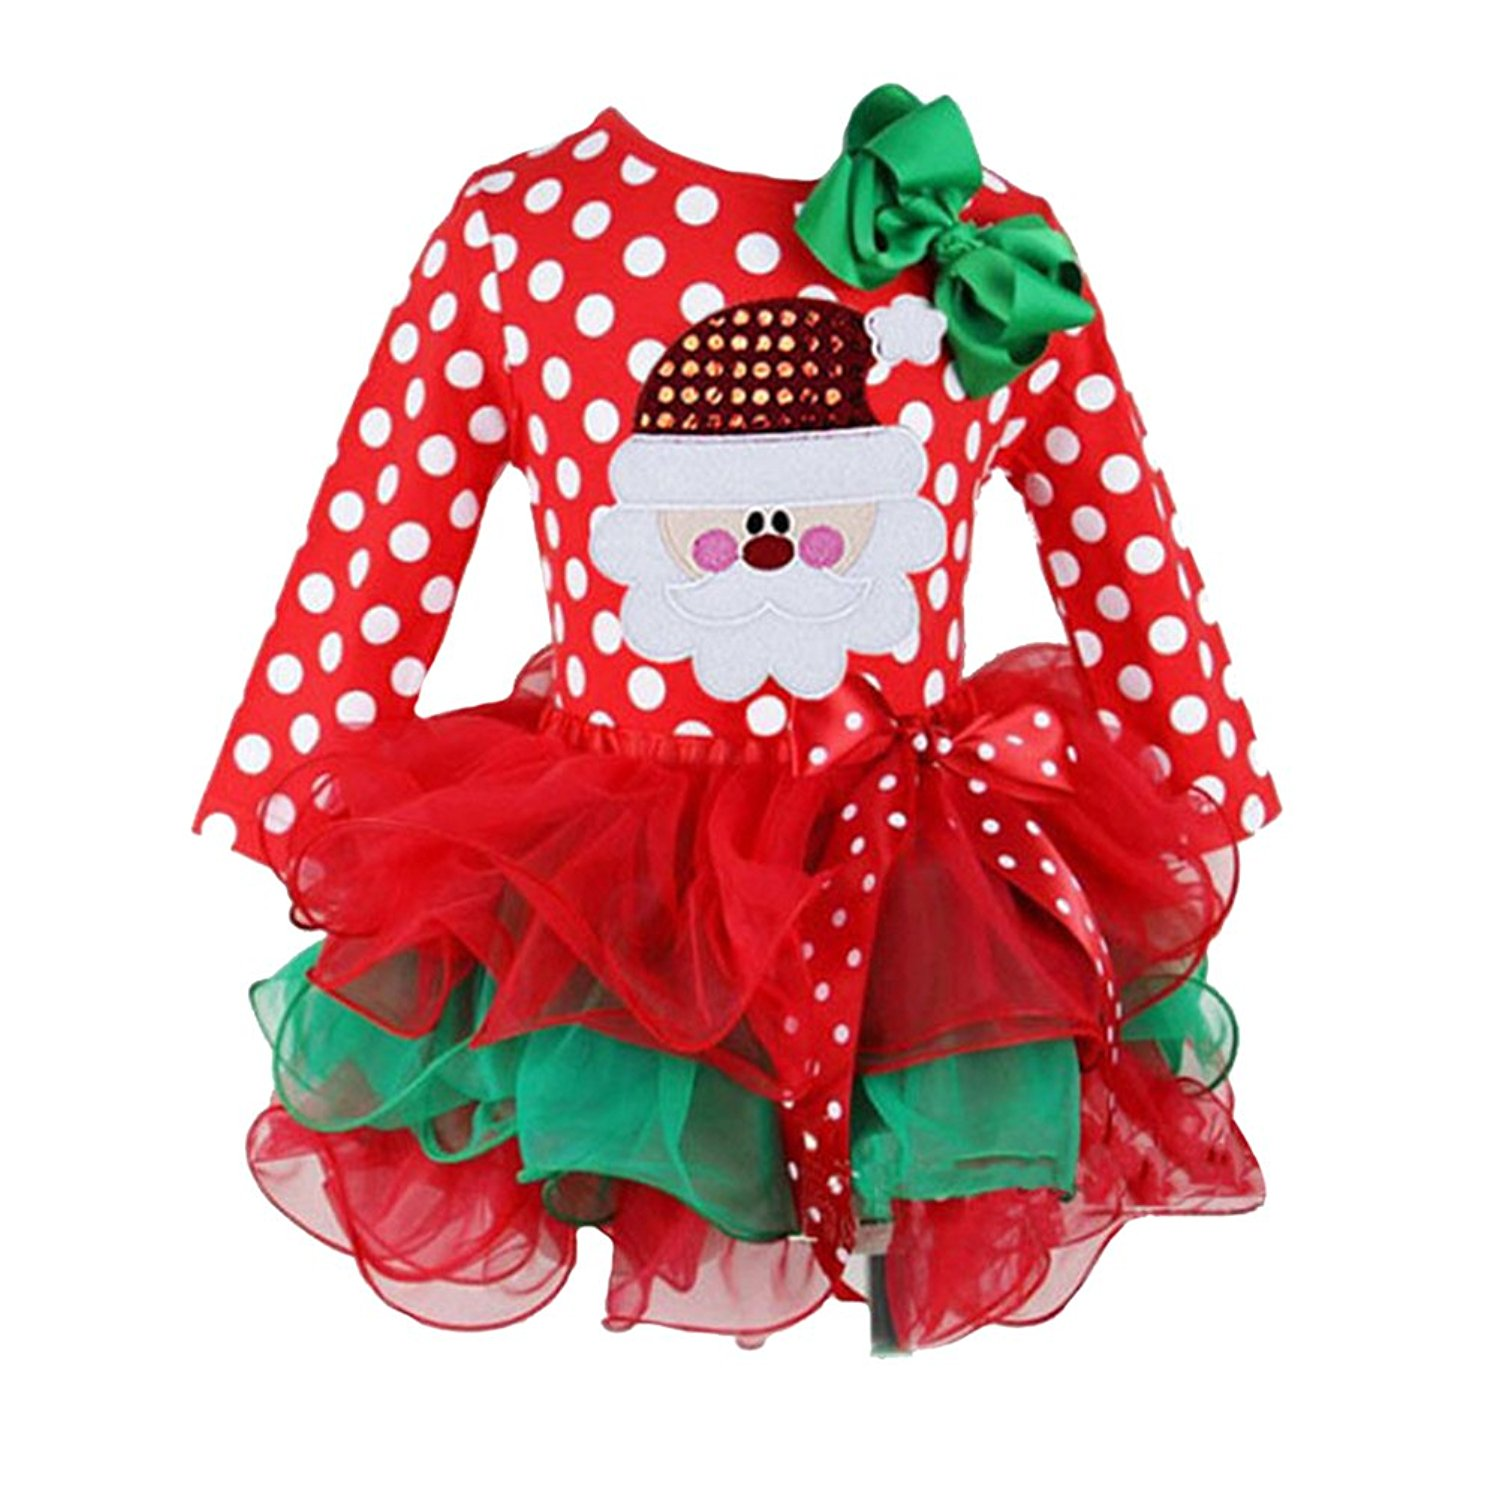 f4fe69e4276fd Get Quotations · LUOEM Christmas Baby Girl Dress Santa Dress for Babies 1-2  Years Old (Red